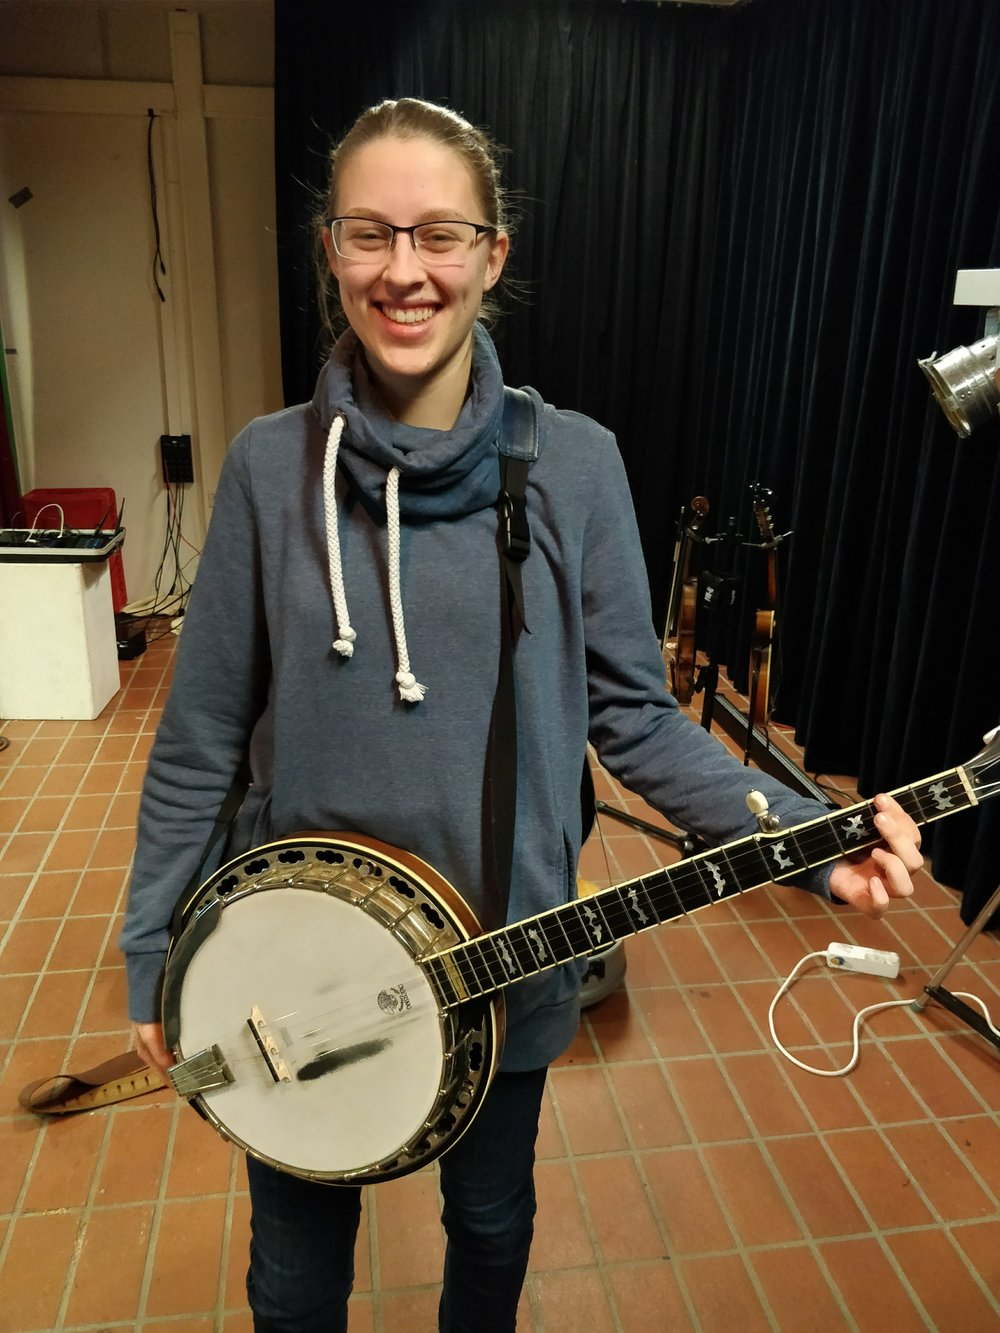 A young musician wanted to try Ben's banjo.